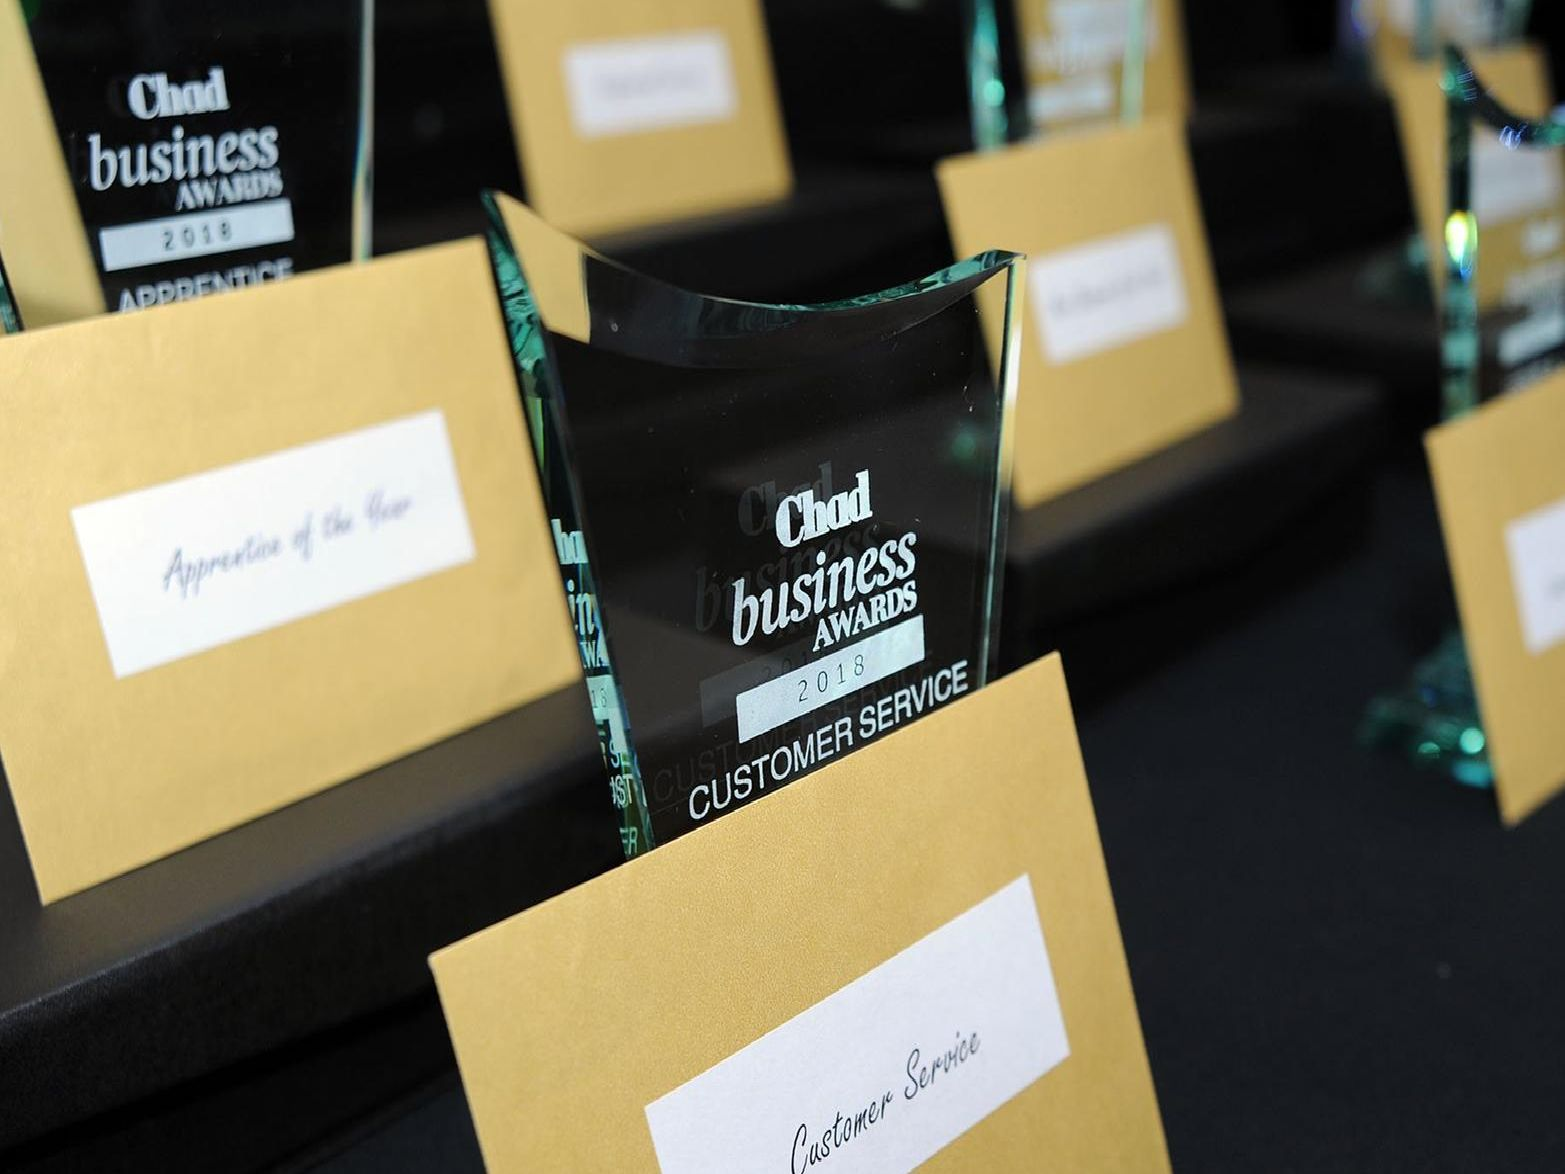 Awards were handed out in a number of categories